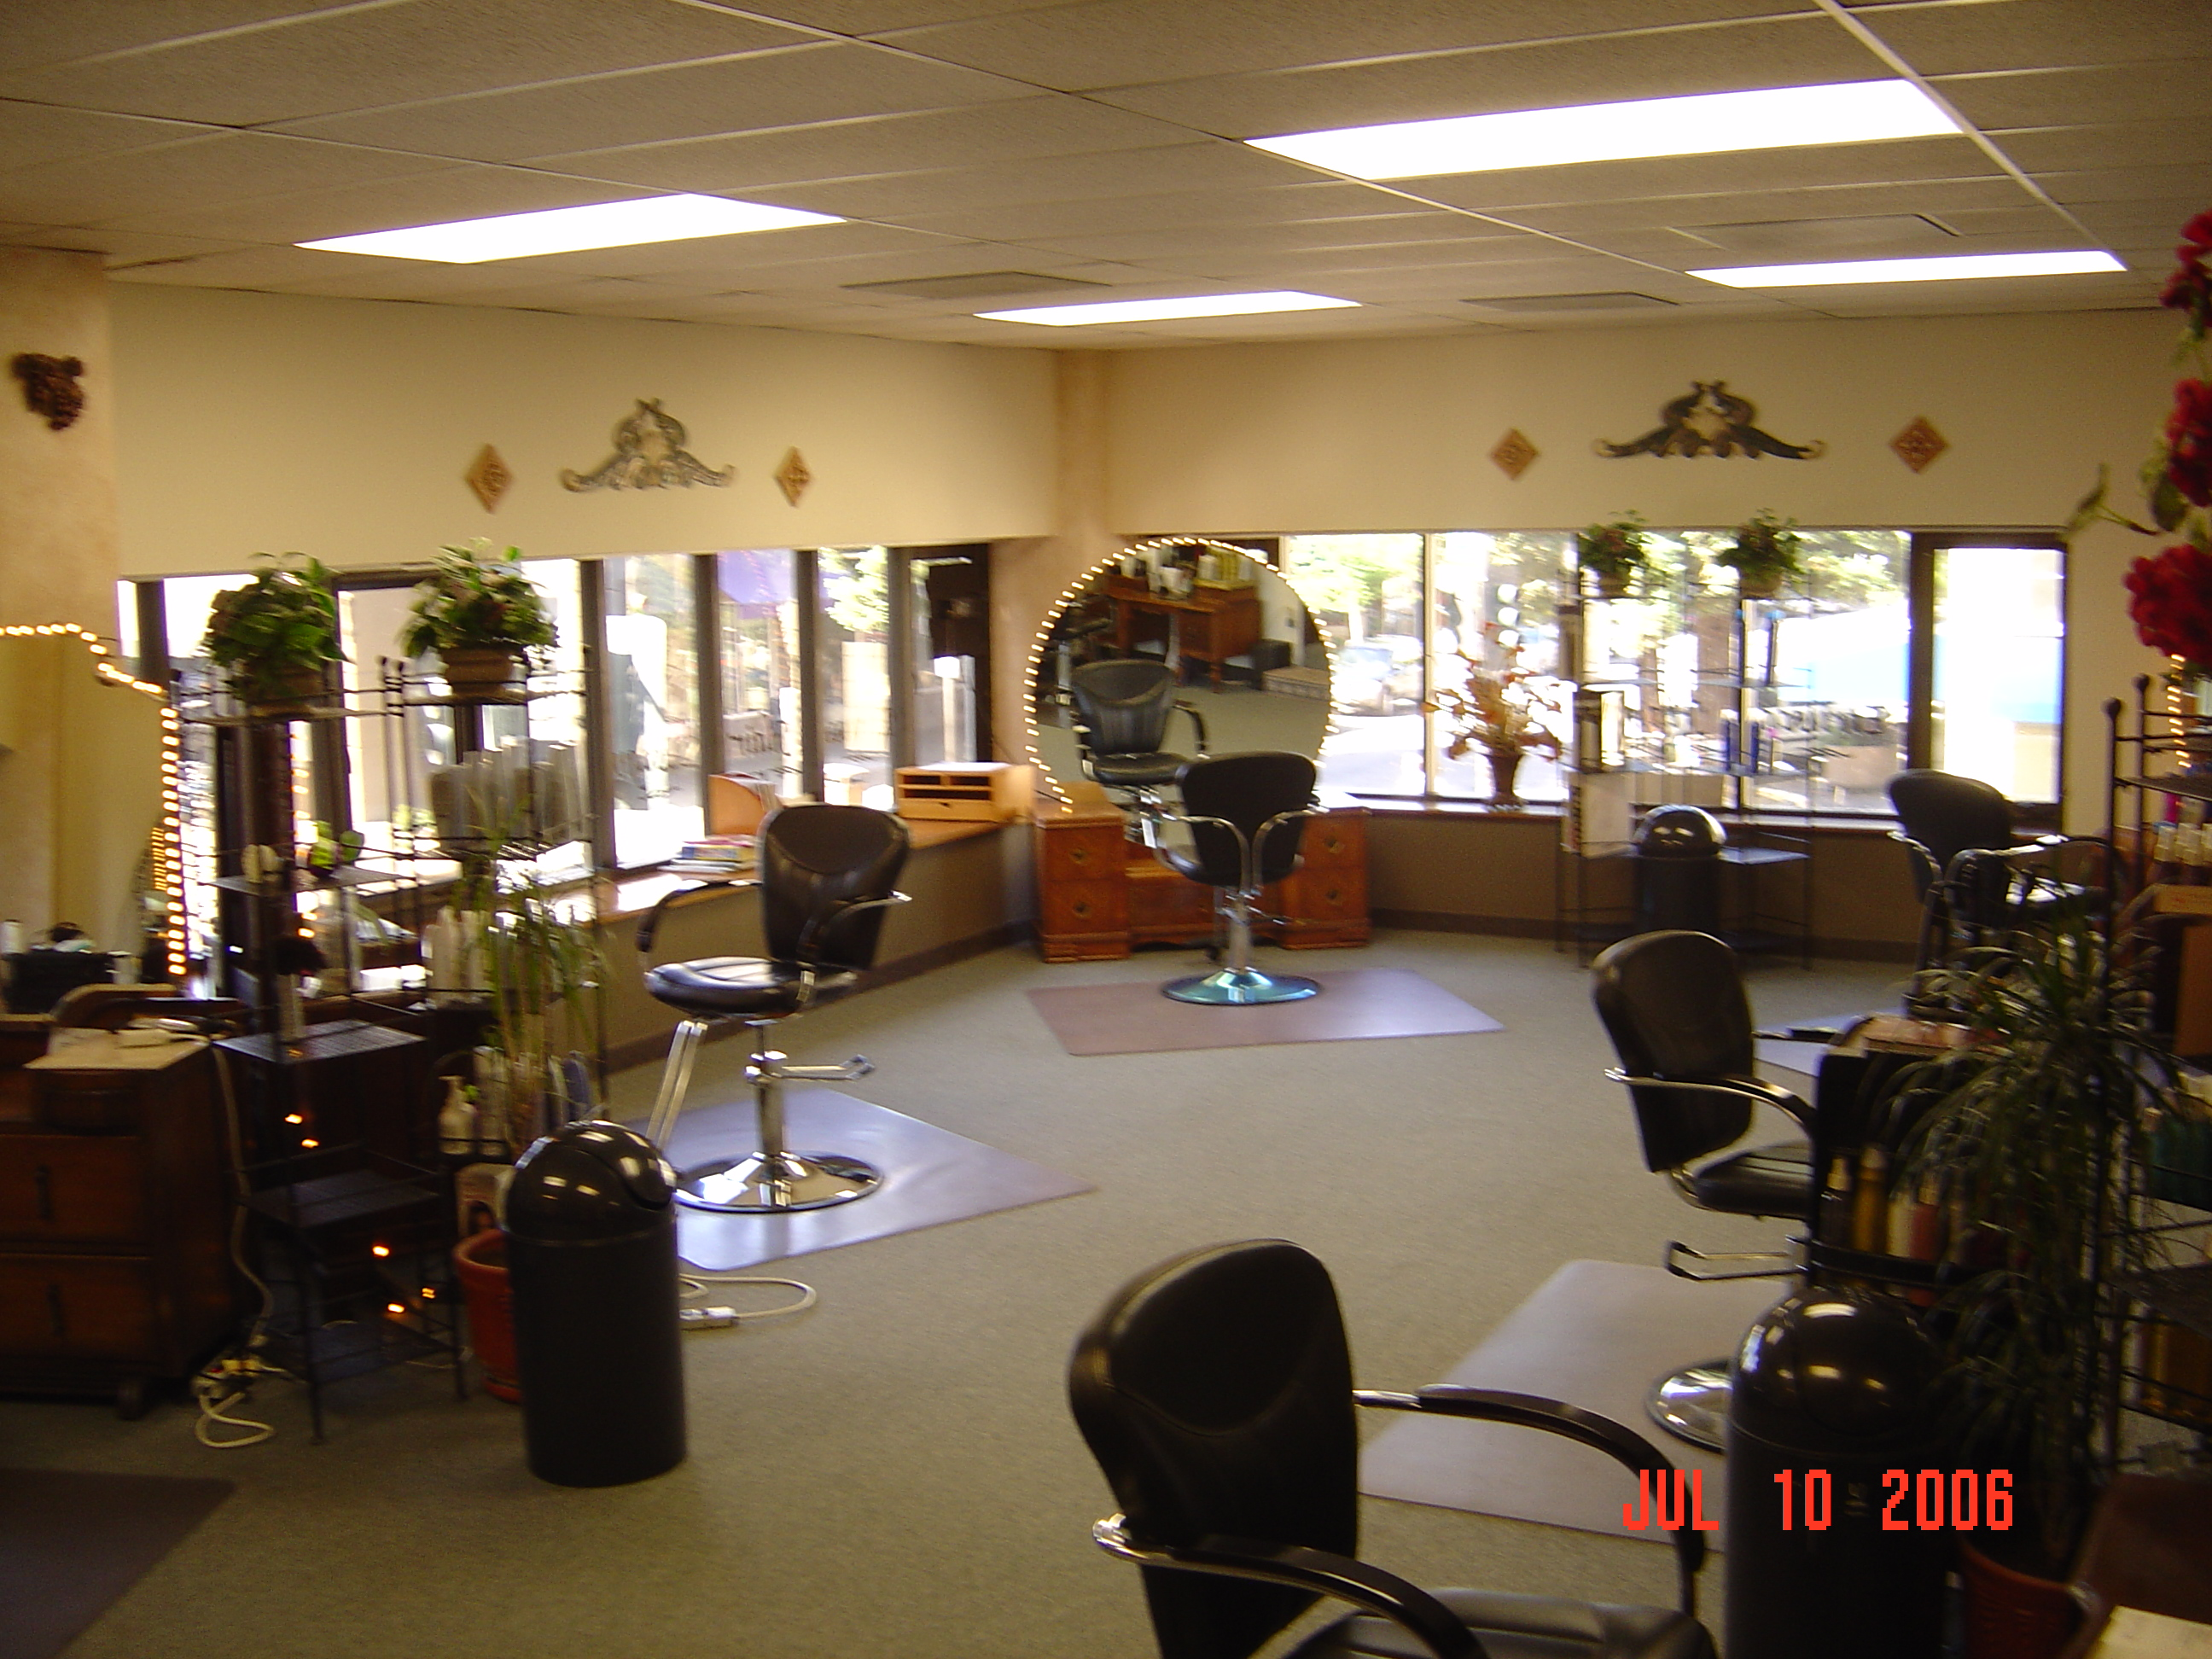 Etrusca hair design salon in santa rosa ca 95404 for 4th street salon